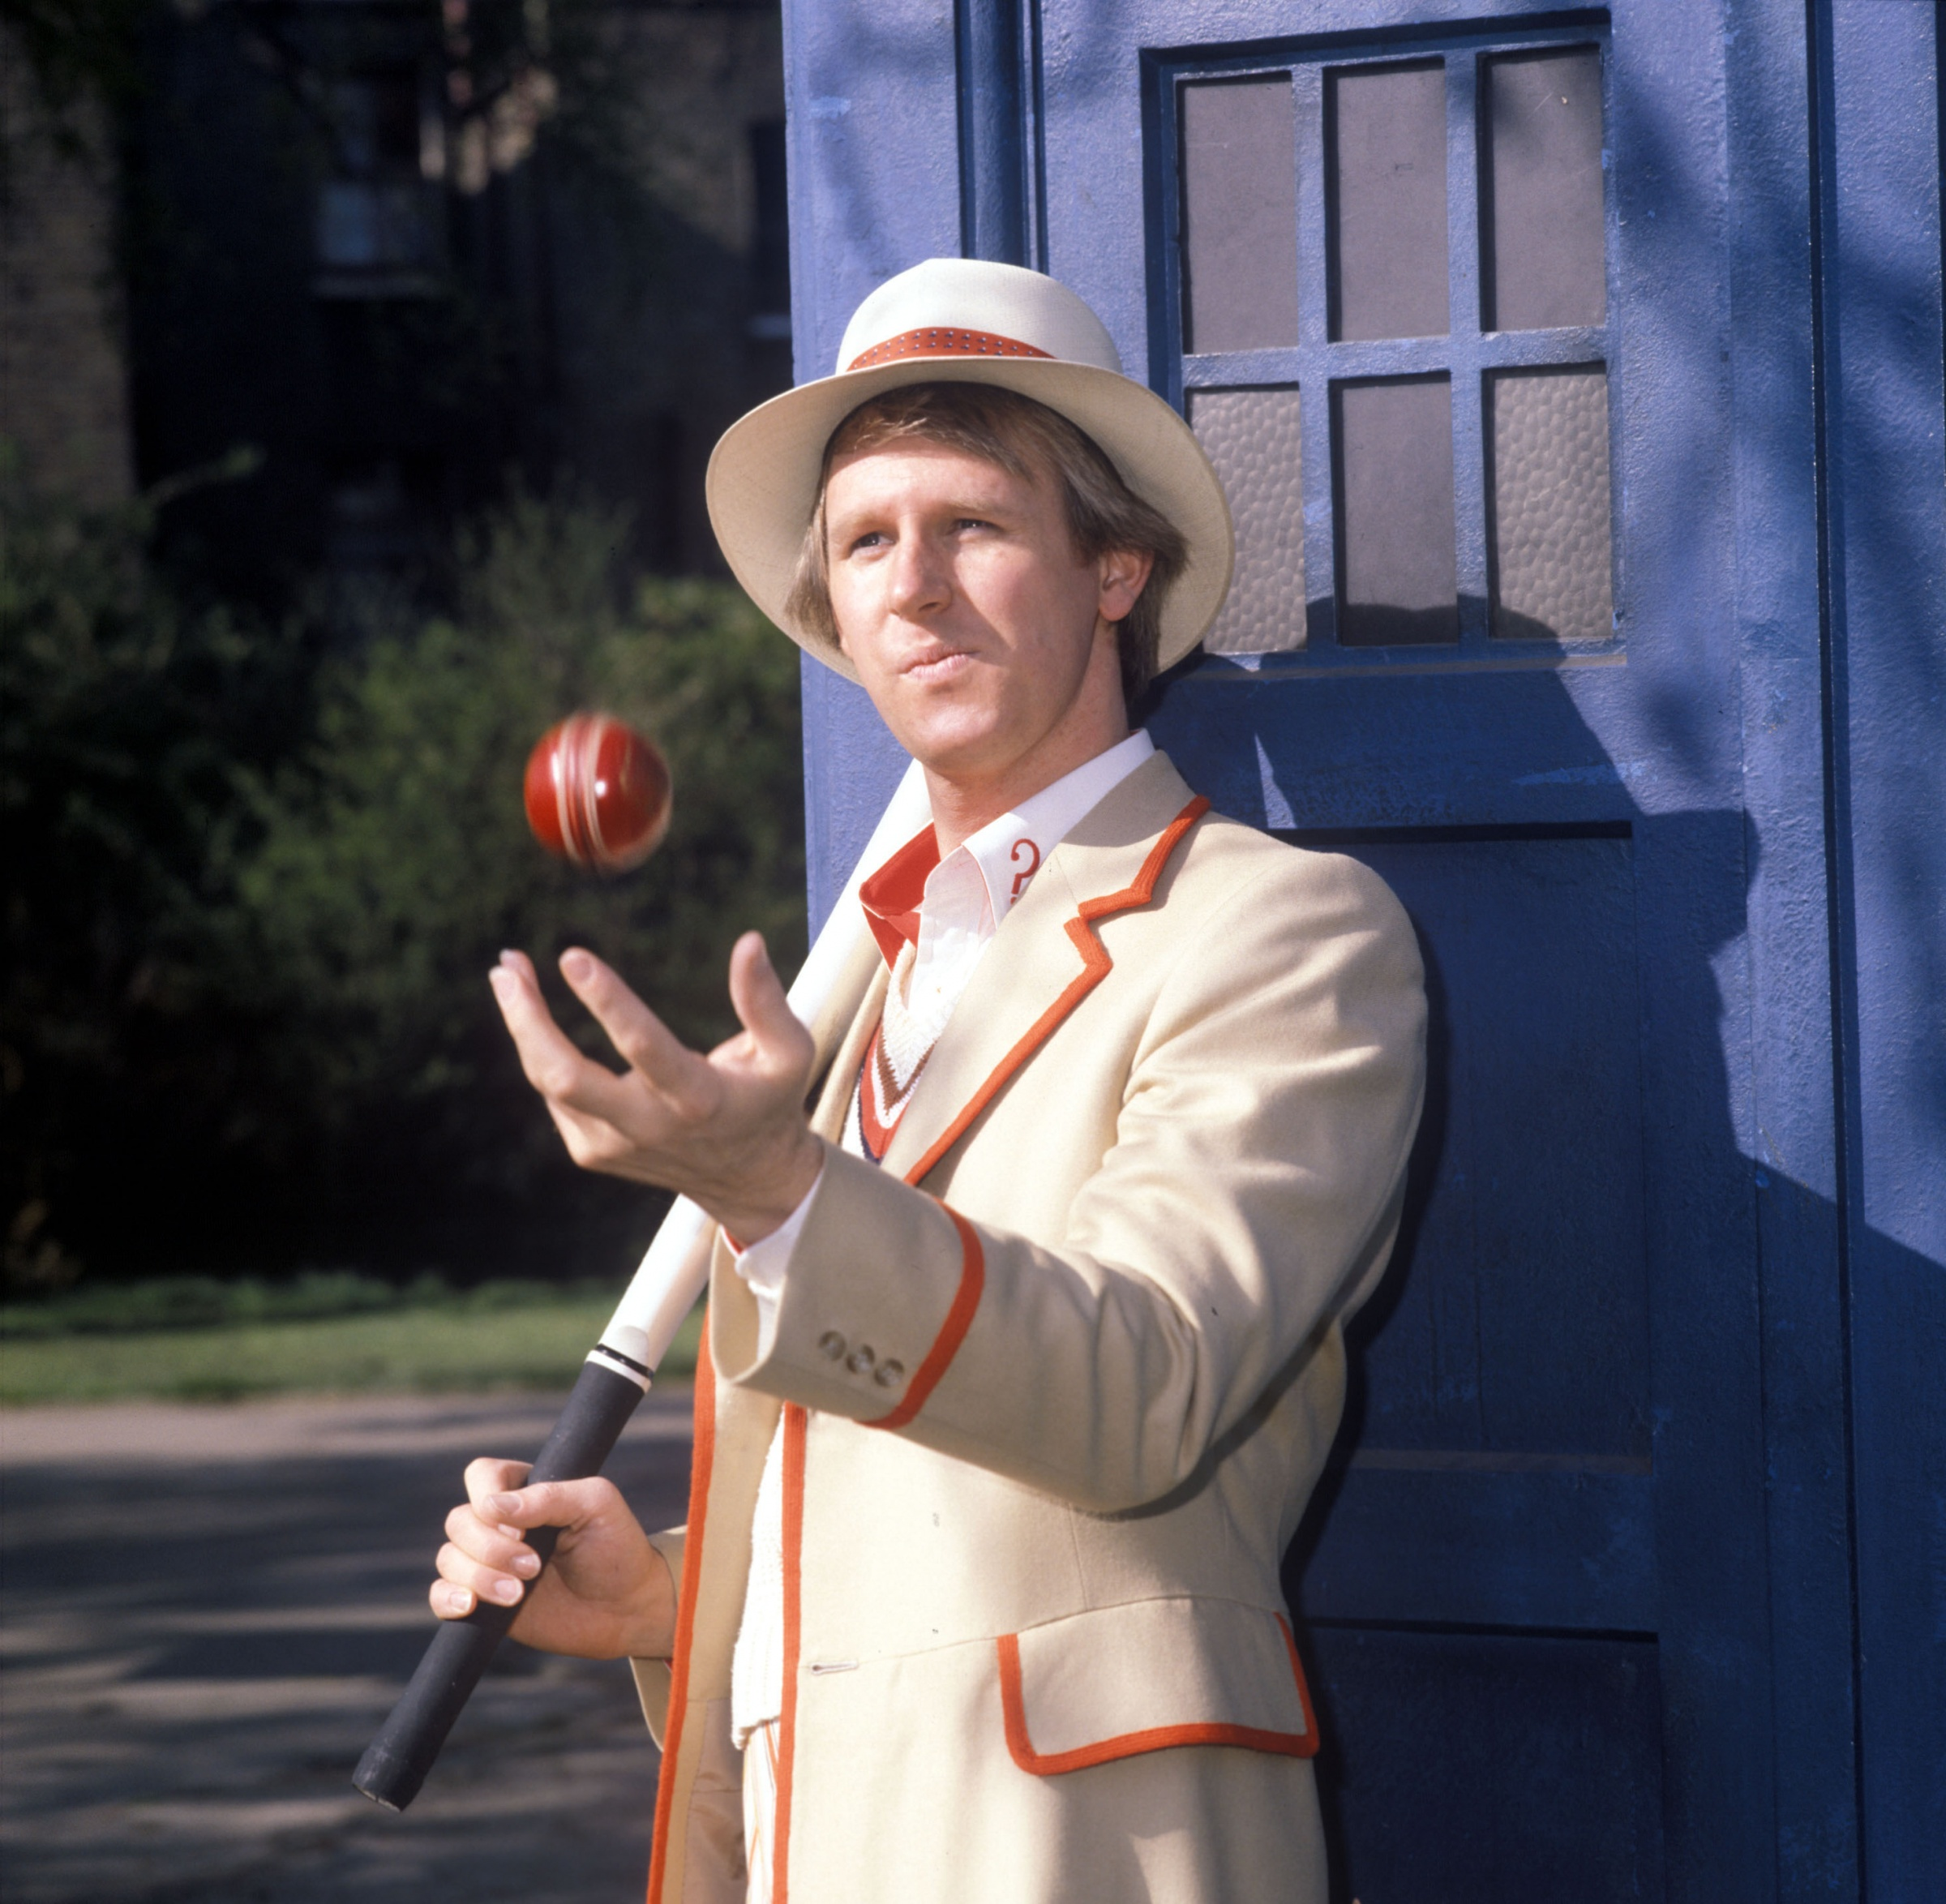 British20actor20Peter20Davison20as20the20Doctor20in20Doctor20Who2C201520April201981-0637a75